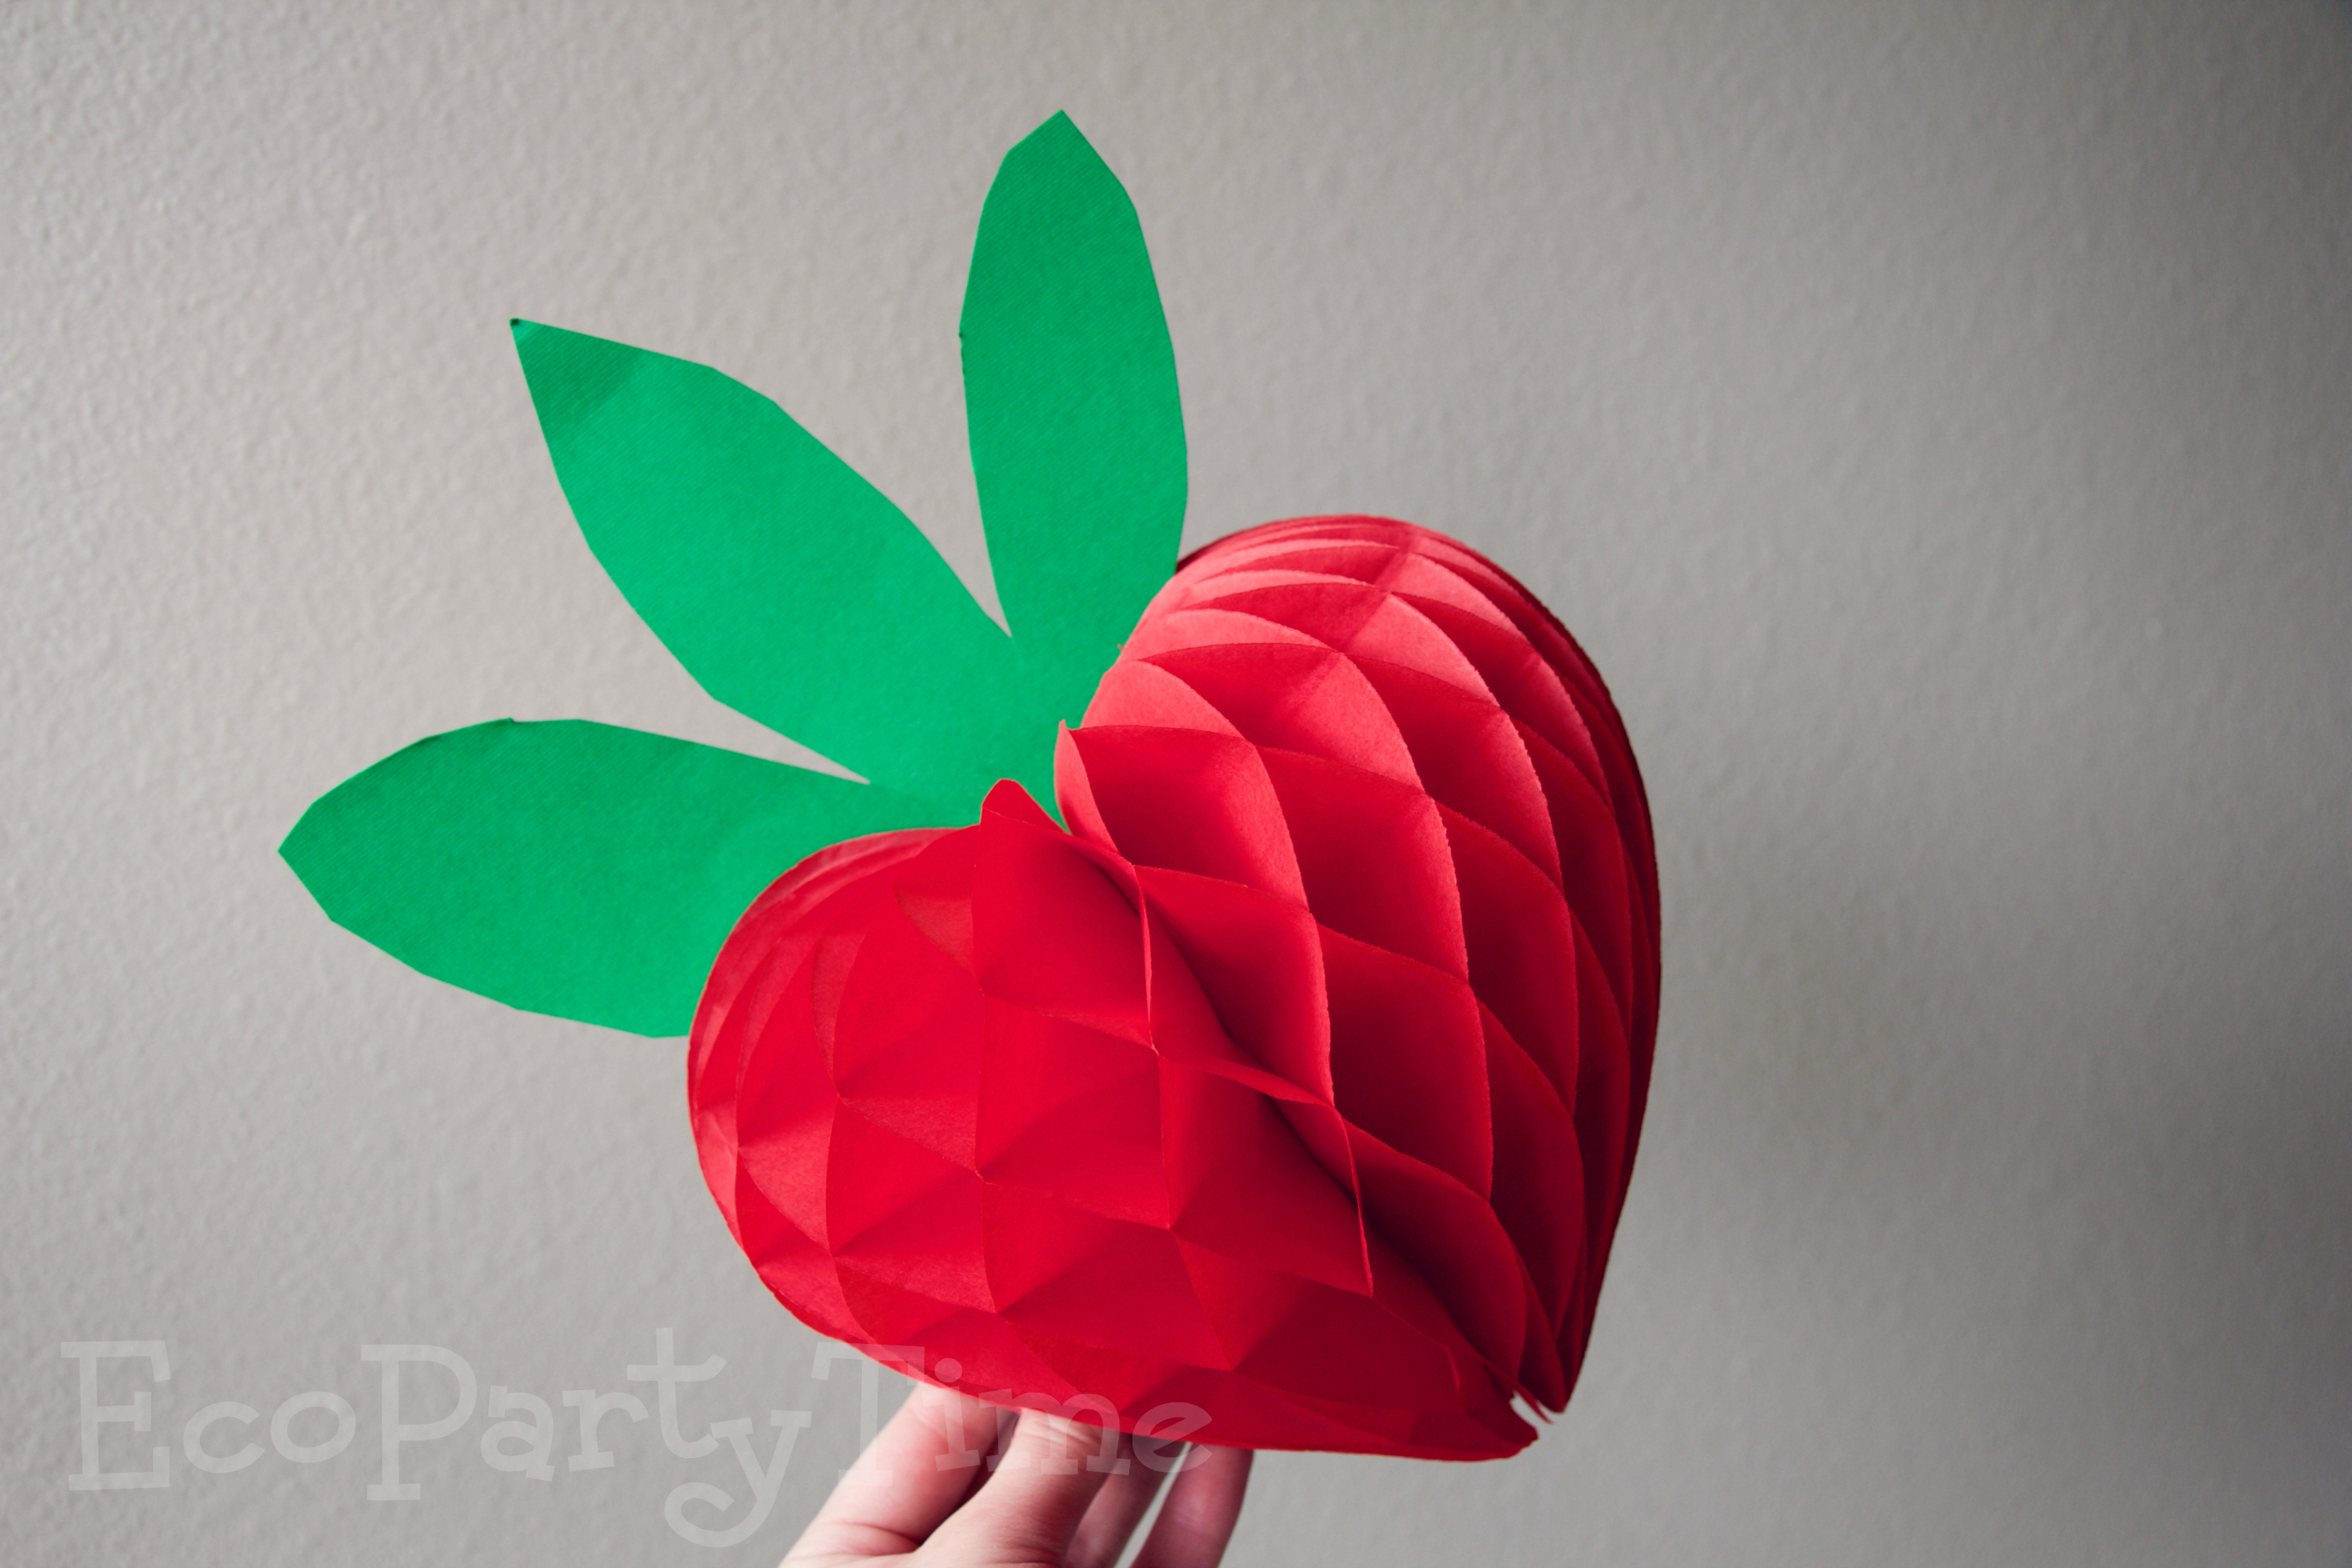 Ecopartytime: Fun Uses for Tissue Fans and Balls